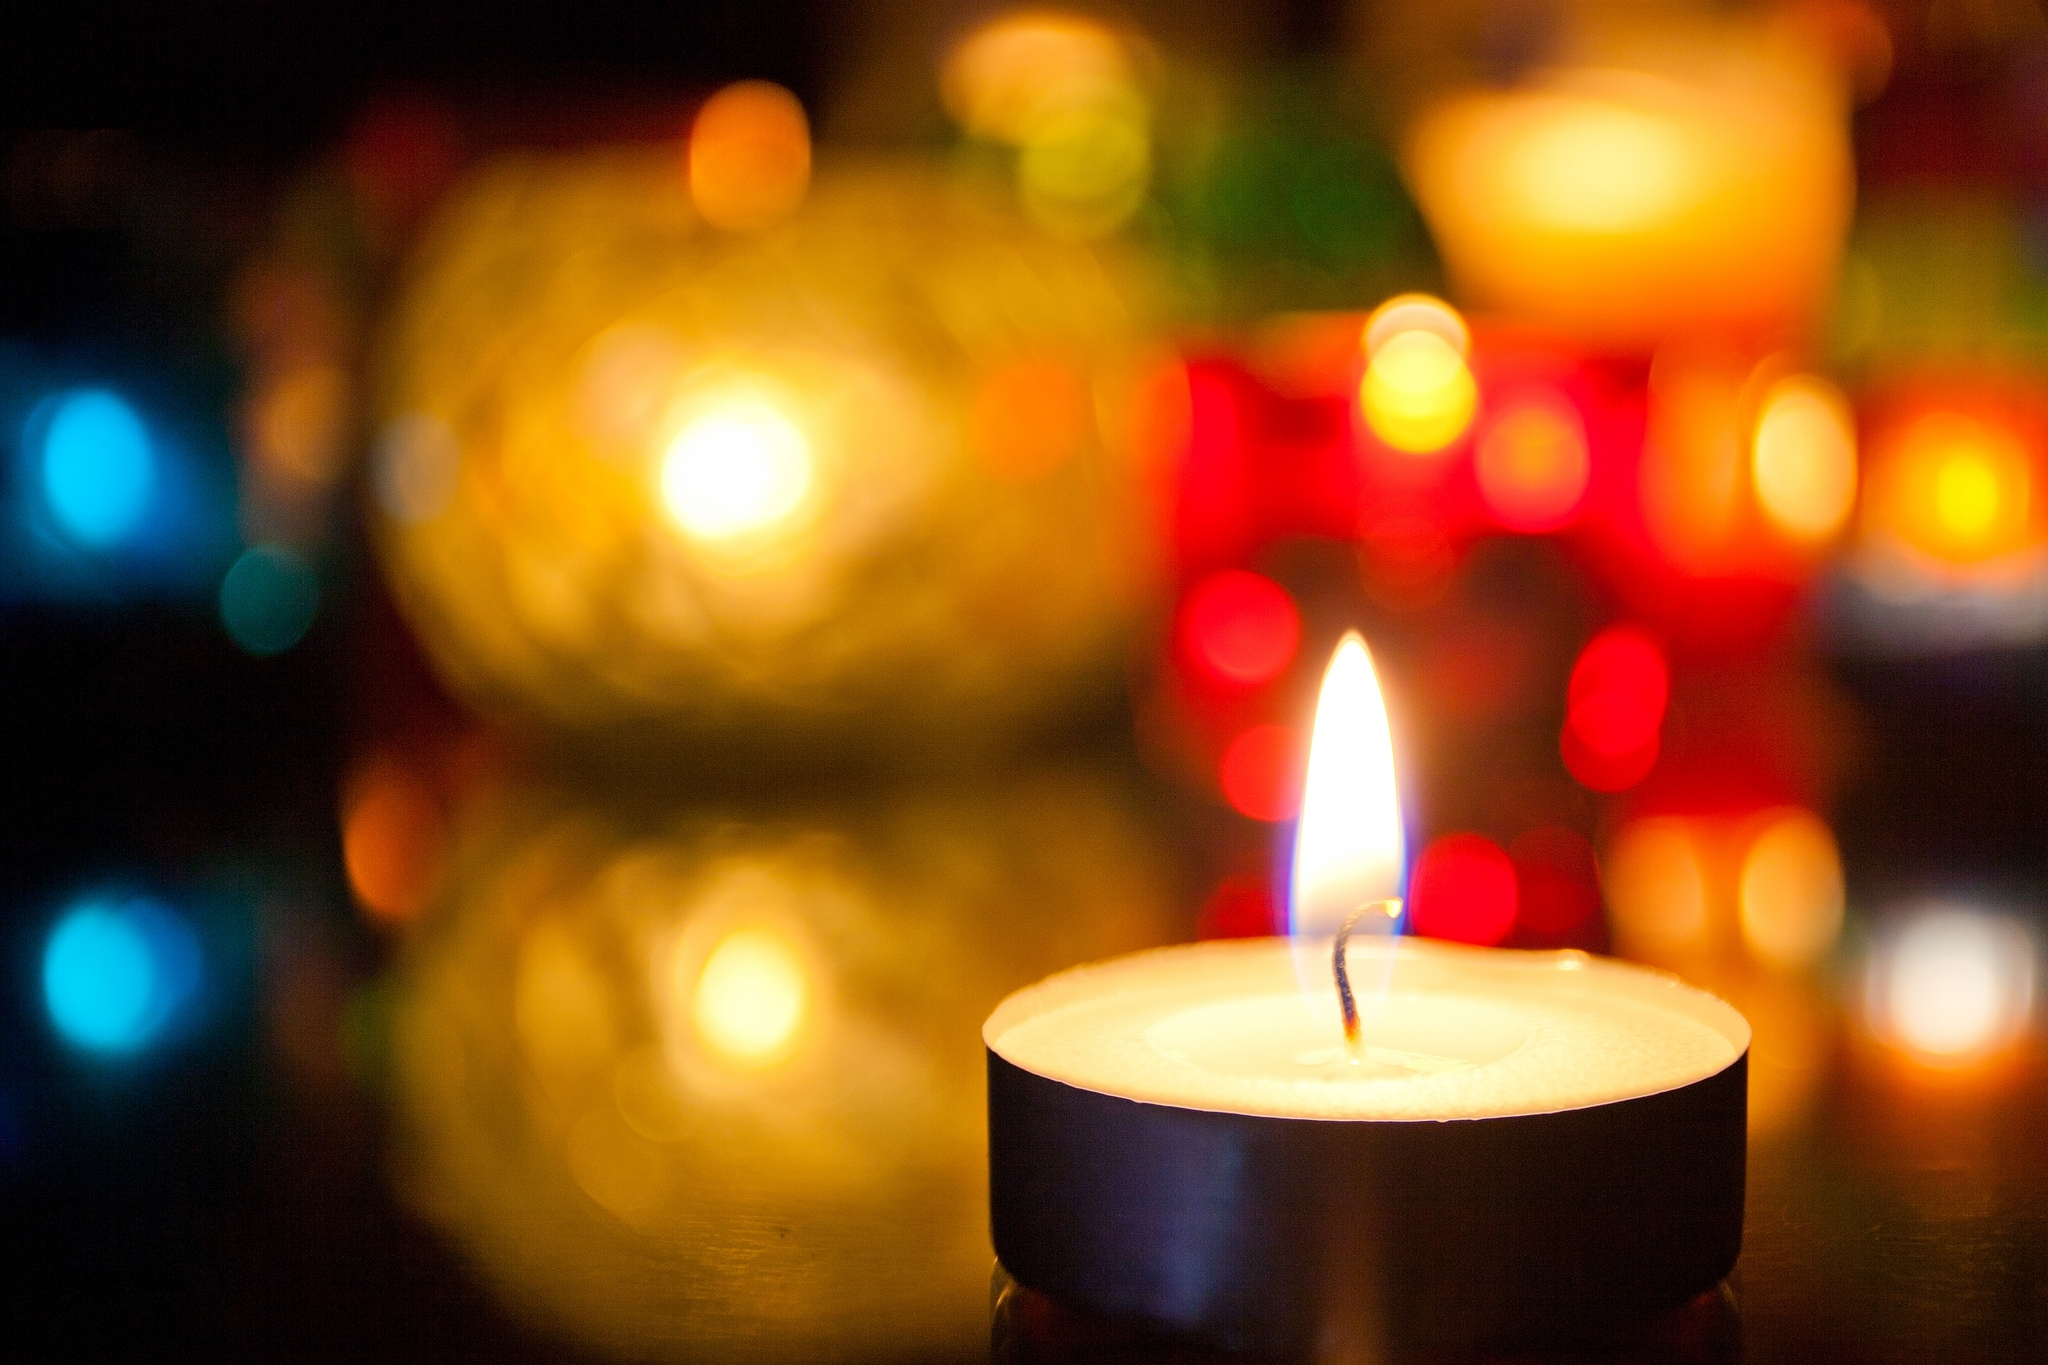 Free Widescreen Wallpaper Fall Candle Hd Wallpaper Background Image 2048x1365 Id